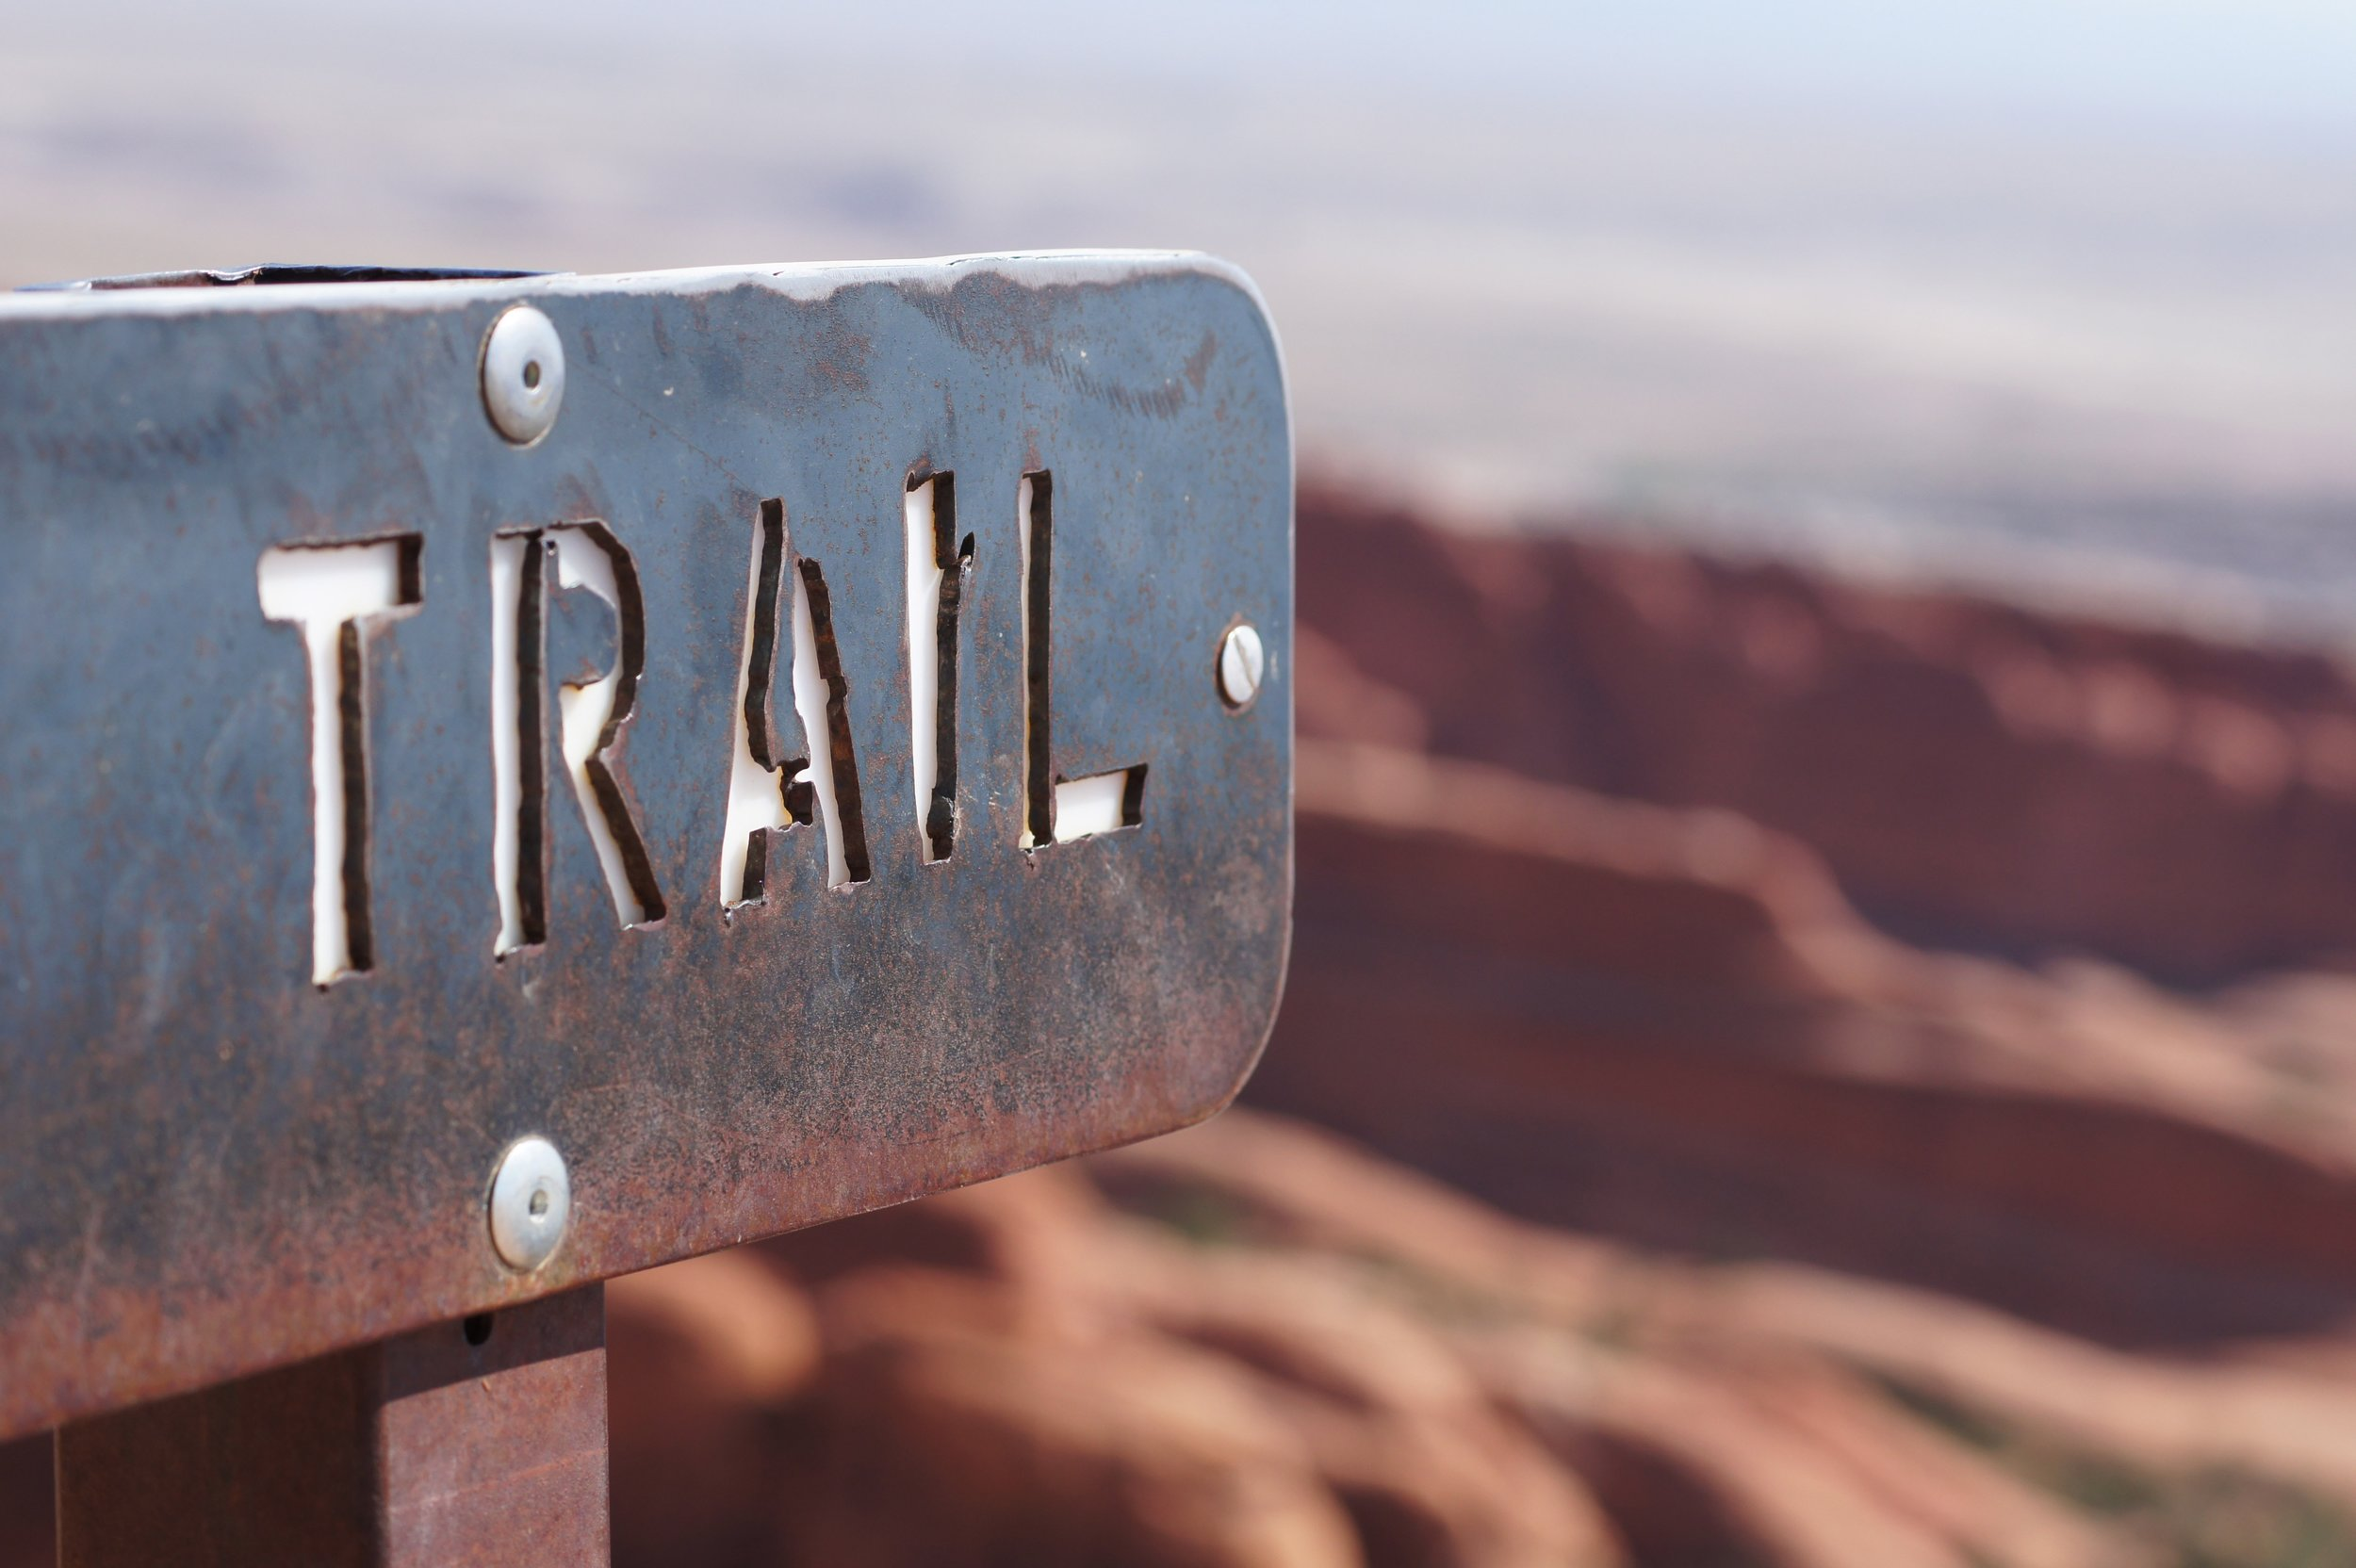 Trails - St. George is home to breathtaking trails, offering everything from a casual family outing to challenging backcountry excursions.Trail Maps